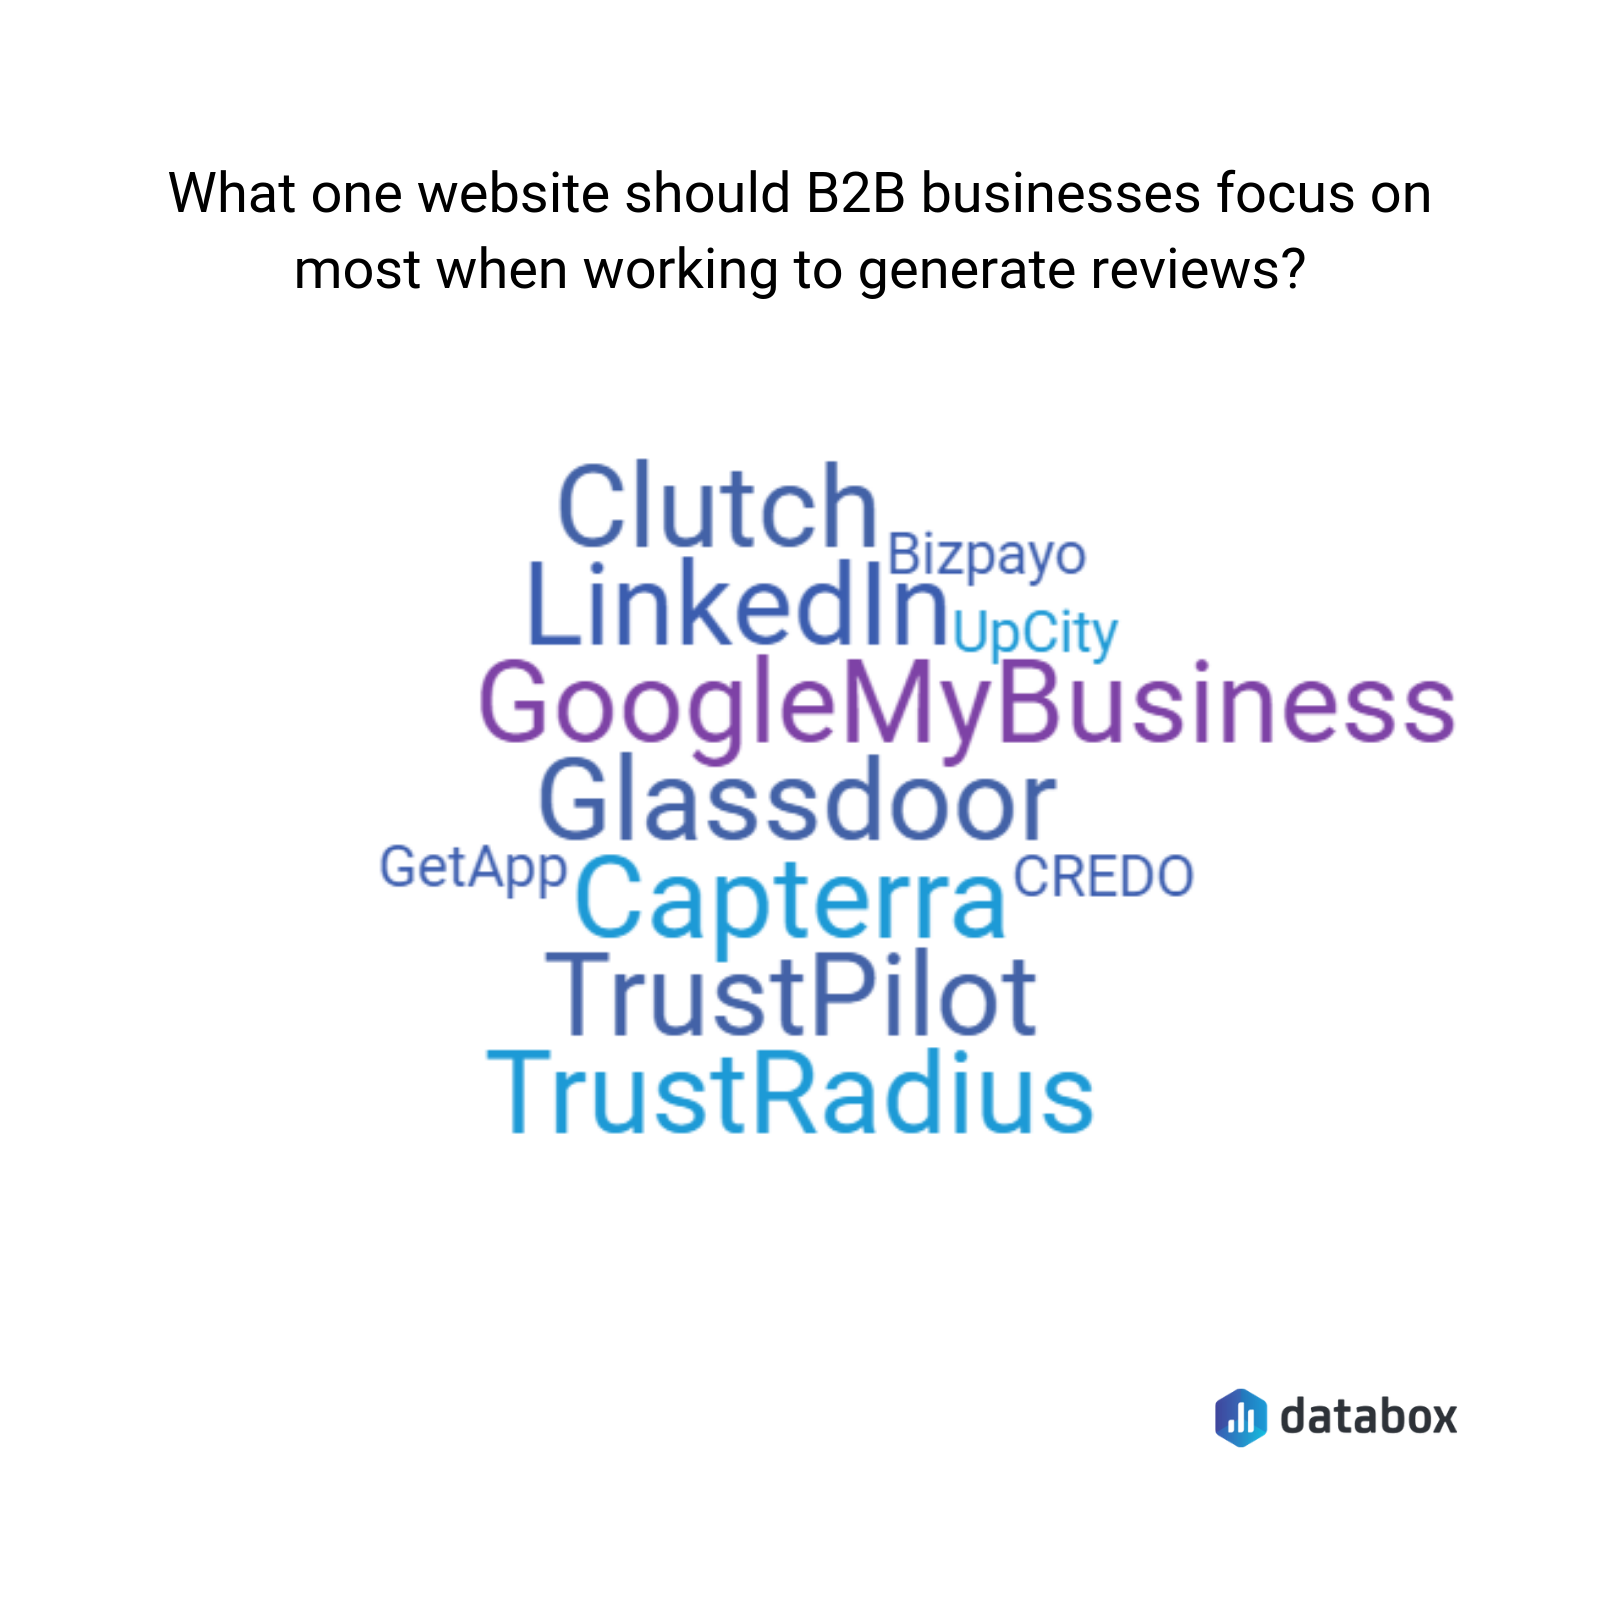 the best review sites for b2b businesses